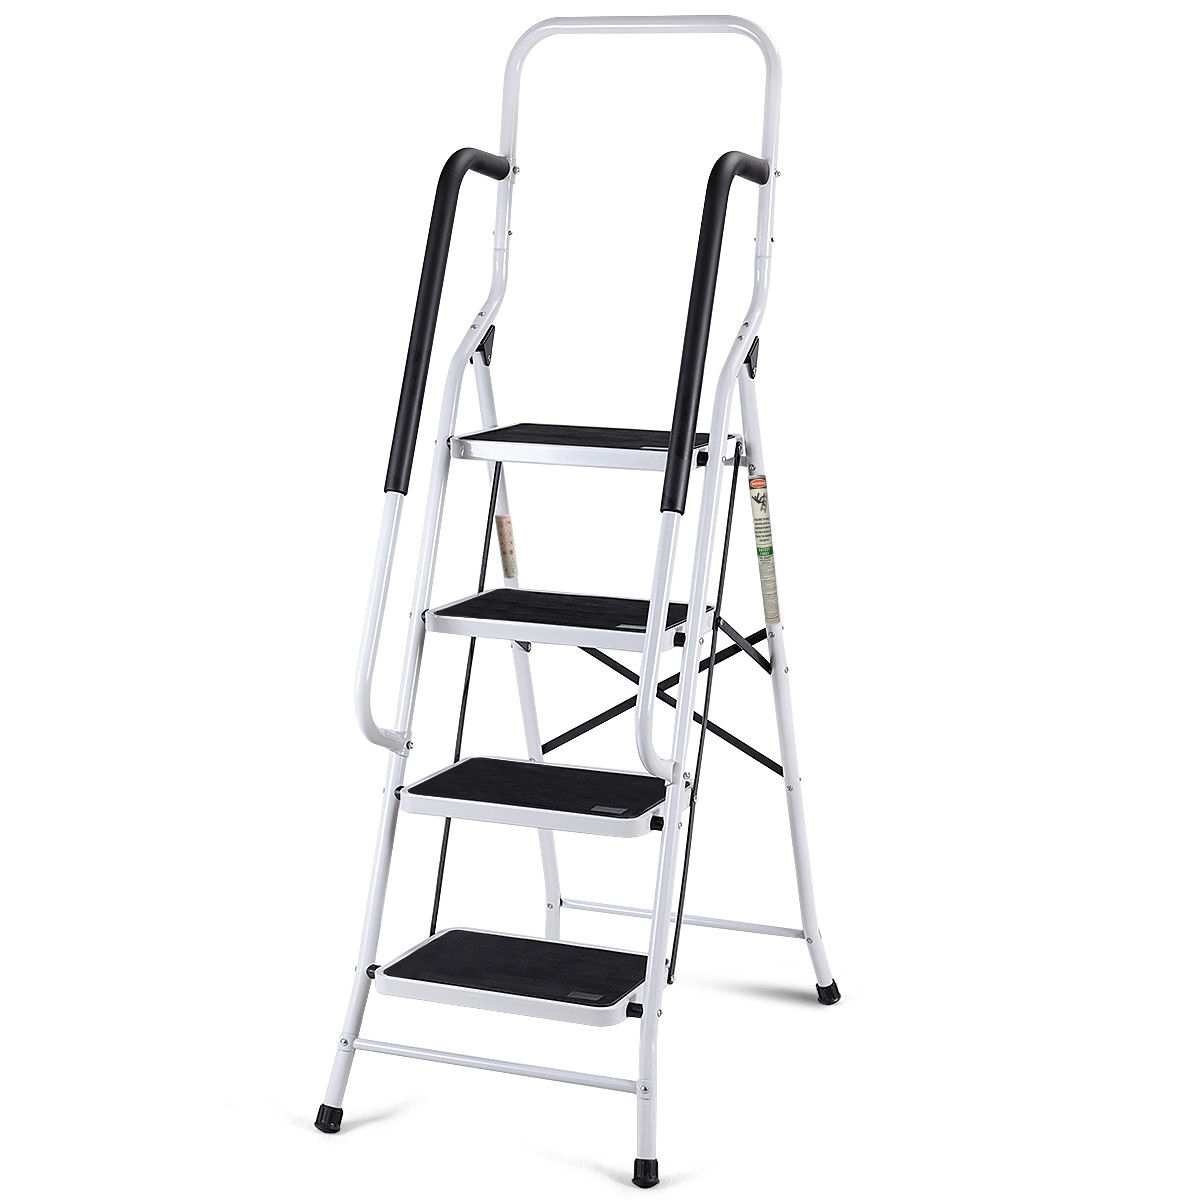 2 in 1 Non-slip 4 Step Folding Stool Ladder with Handrails